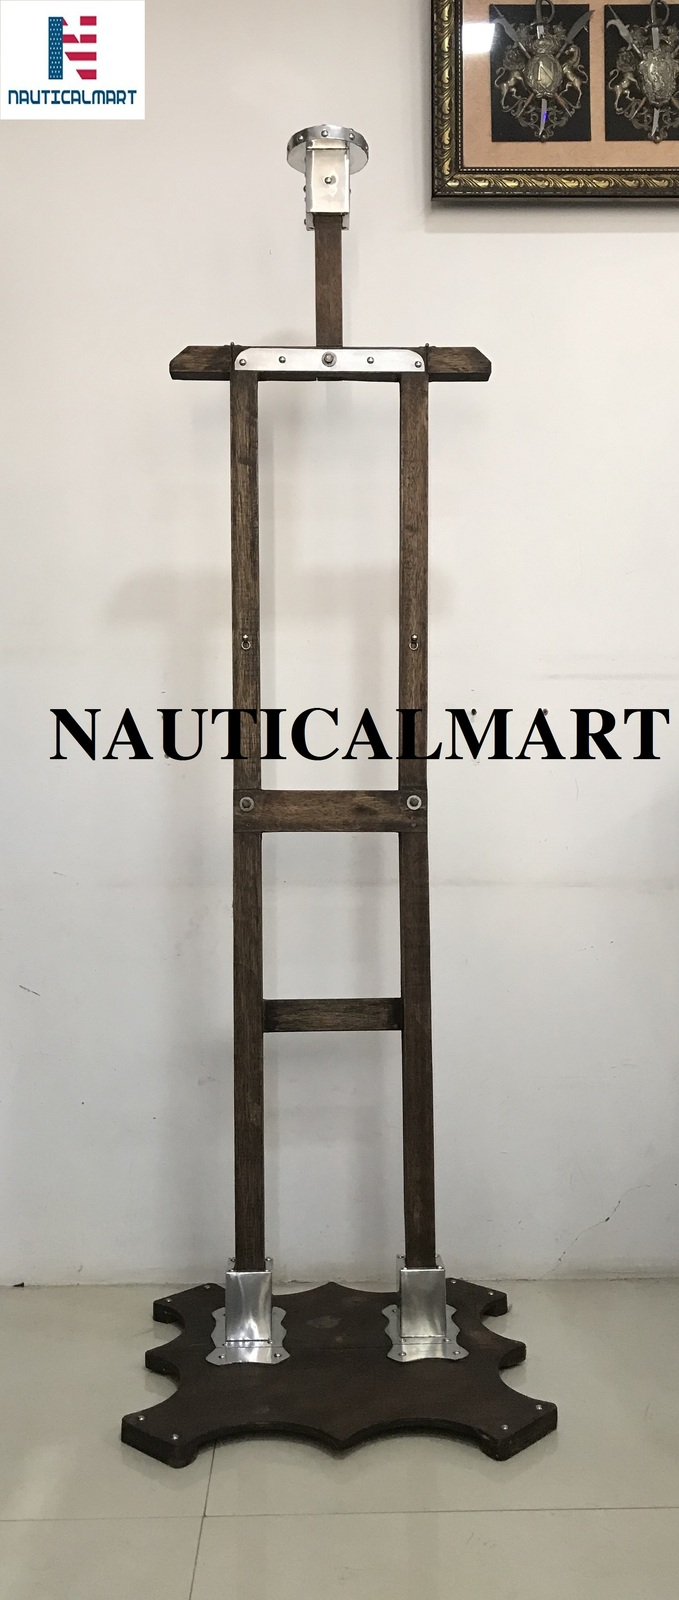 Primary image for NauticalMart Wooden Armor Stand